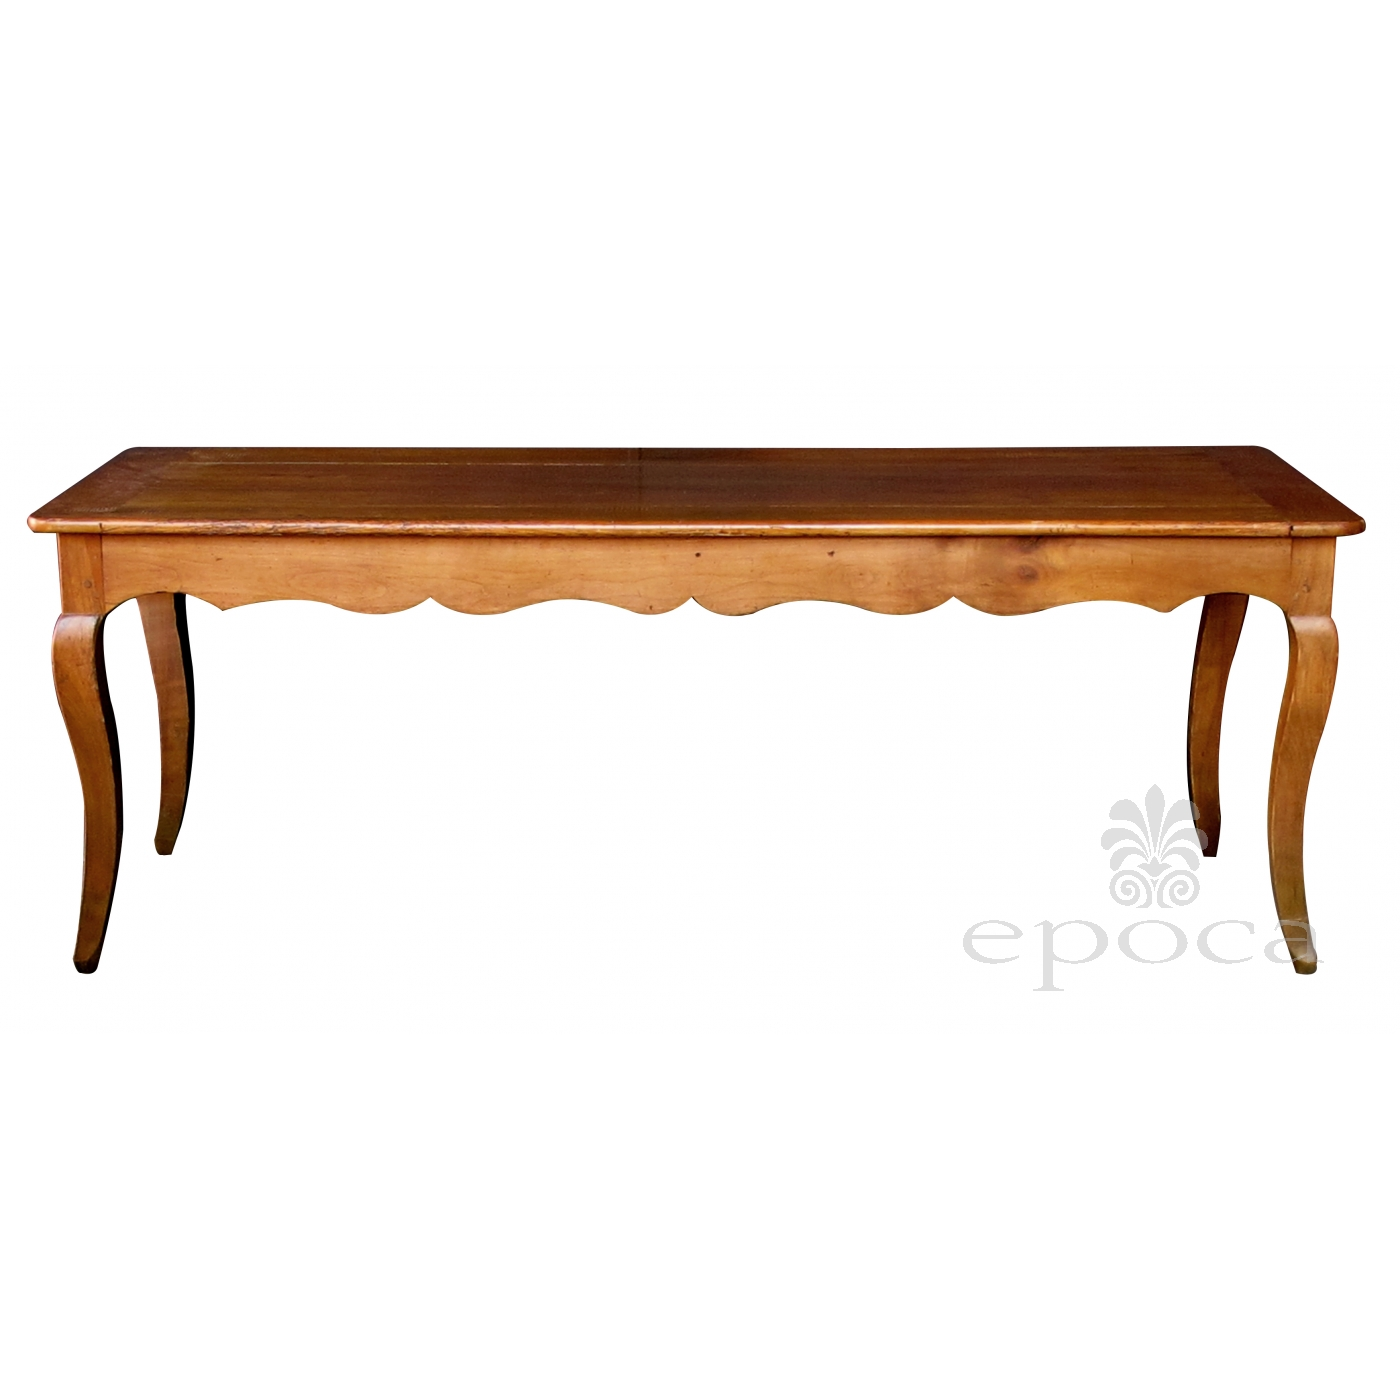 Sy French Country Cherry Wood